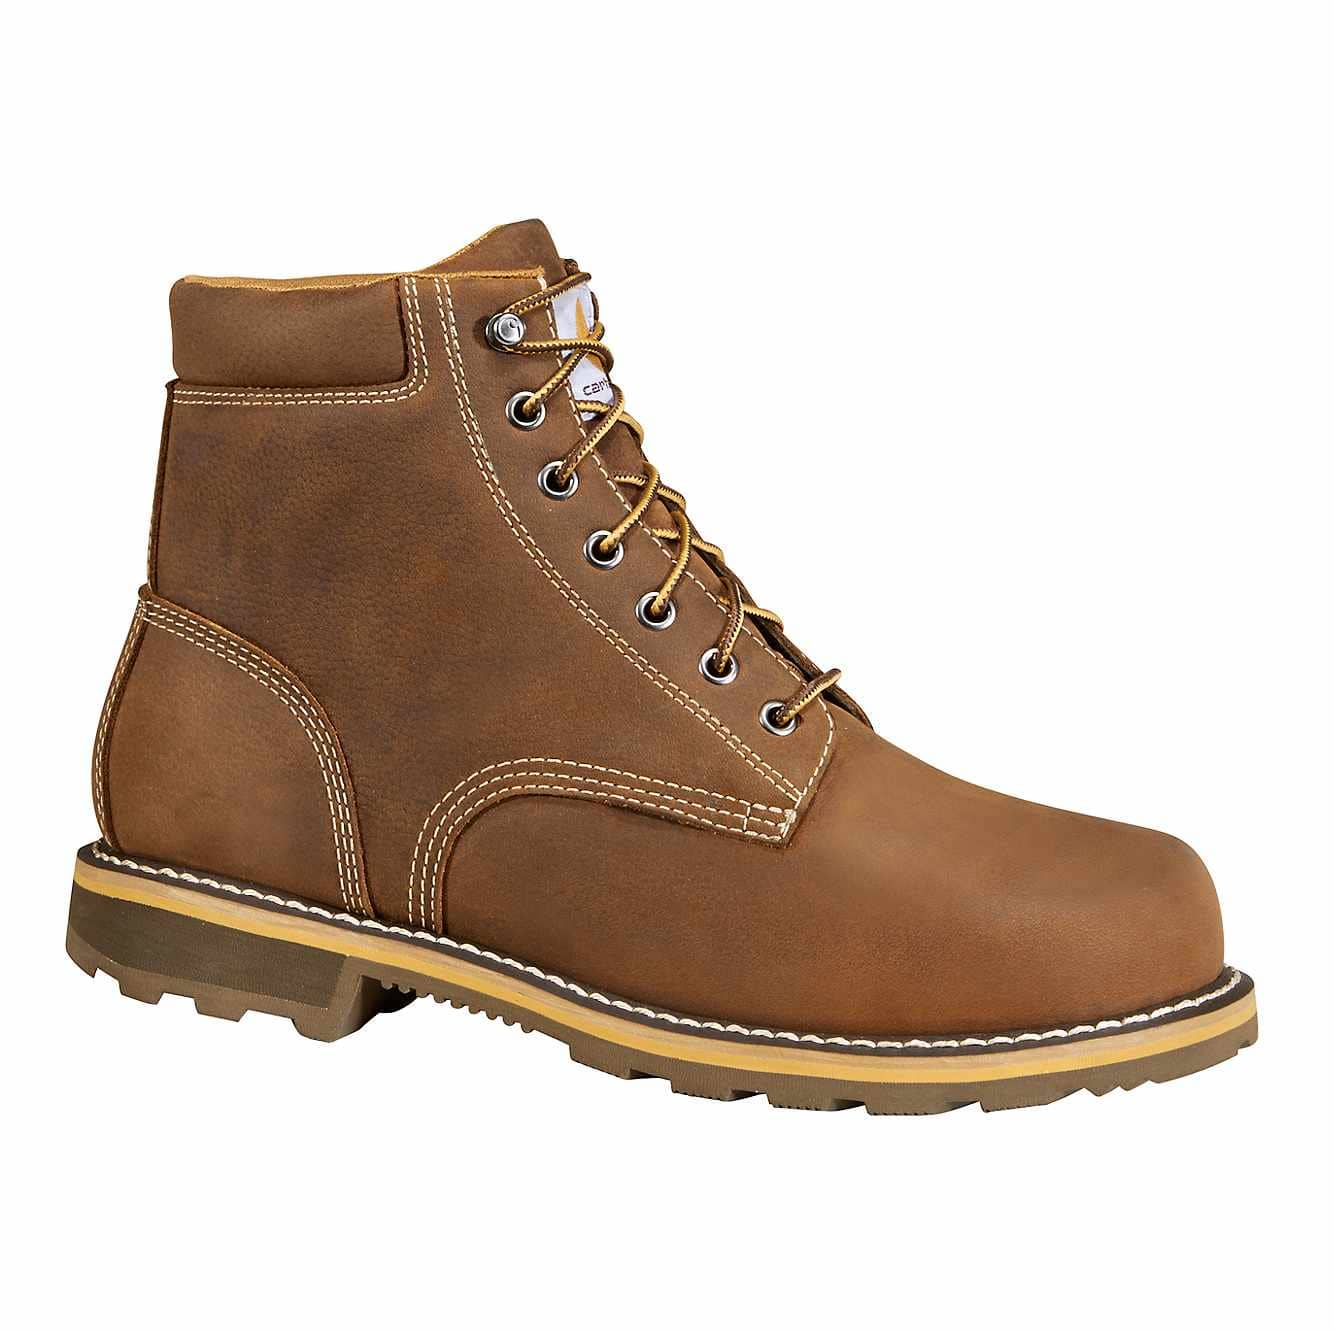 Picture of 6-Inch Non-Safety Toe Work Boot in Brown Oil Tanned